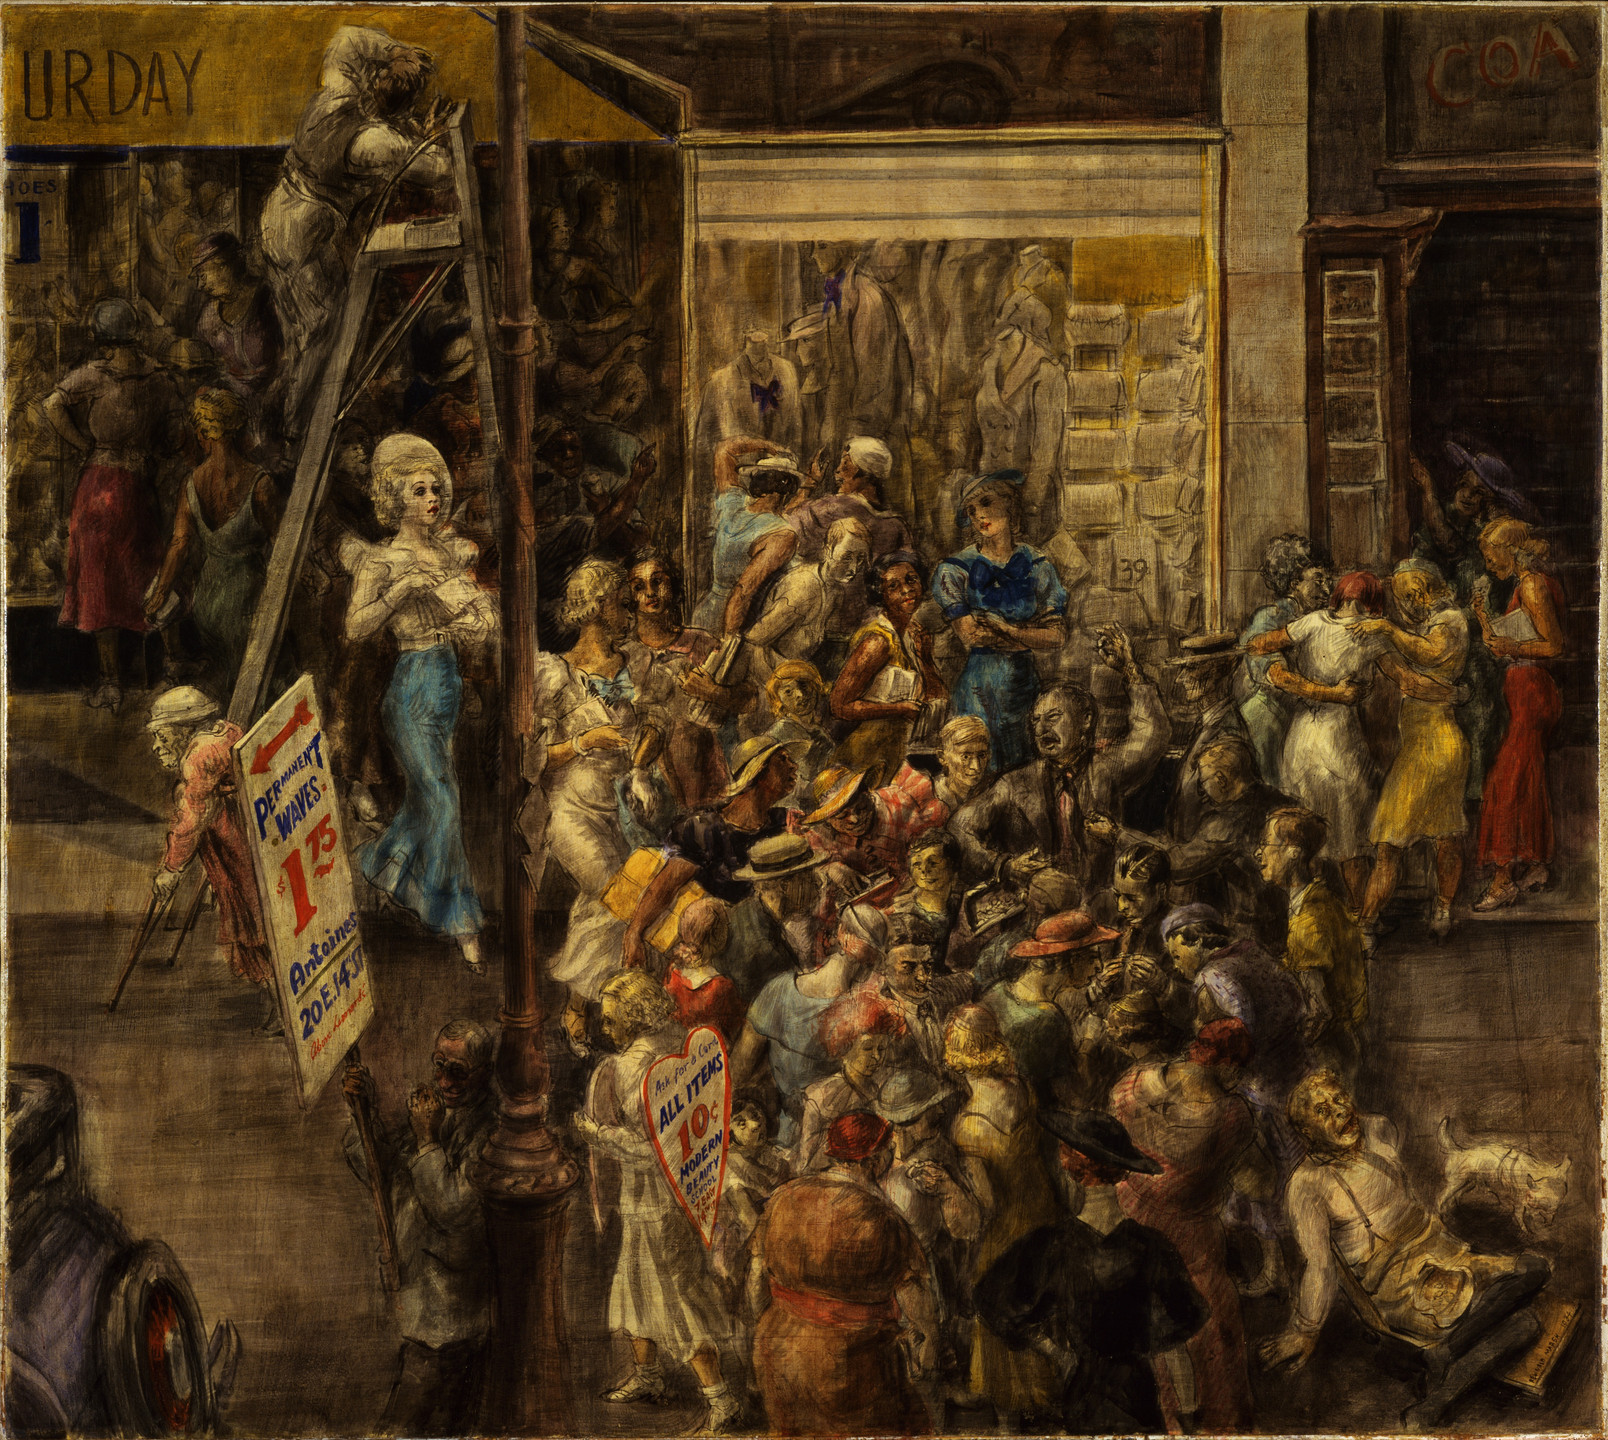 Reginald Marsh. In Fourteenth Street. 1934